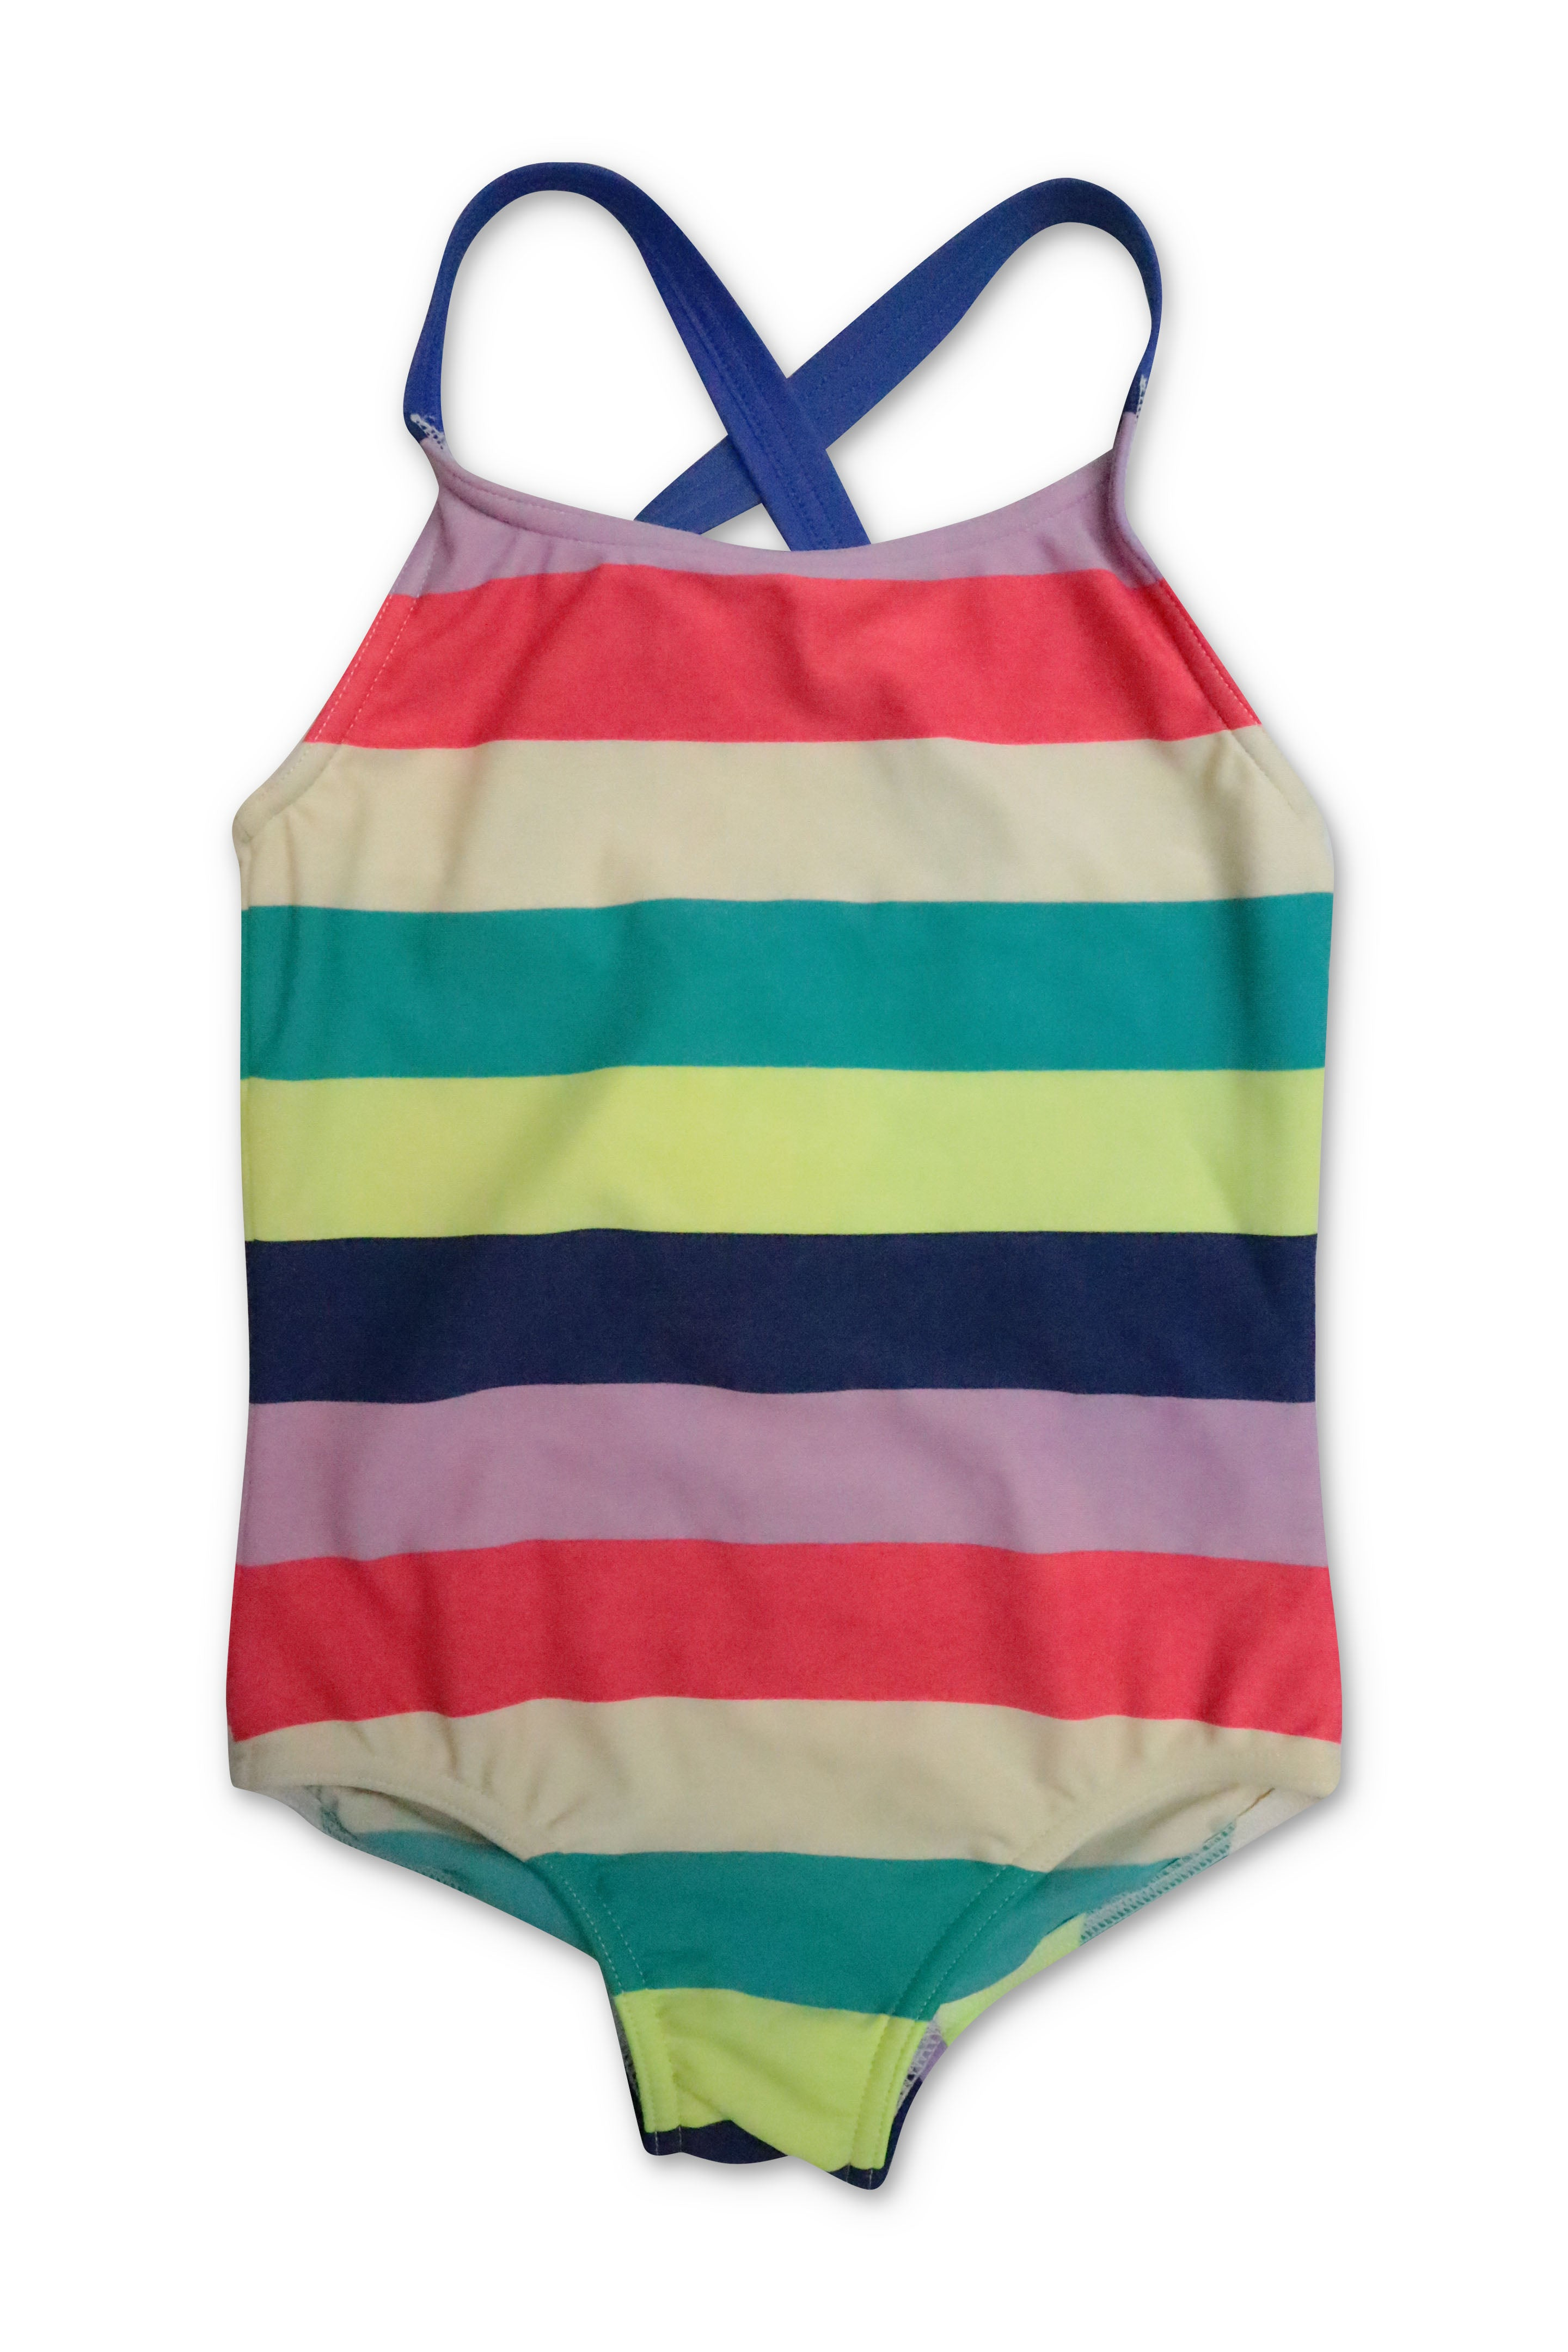 Mini Boden Swimsuit size 5